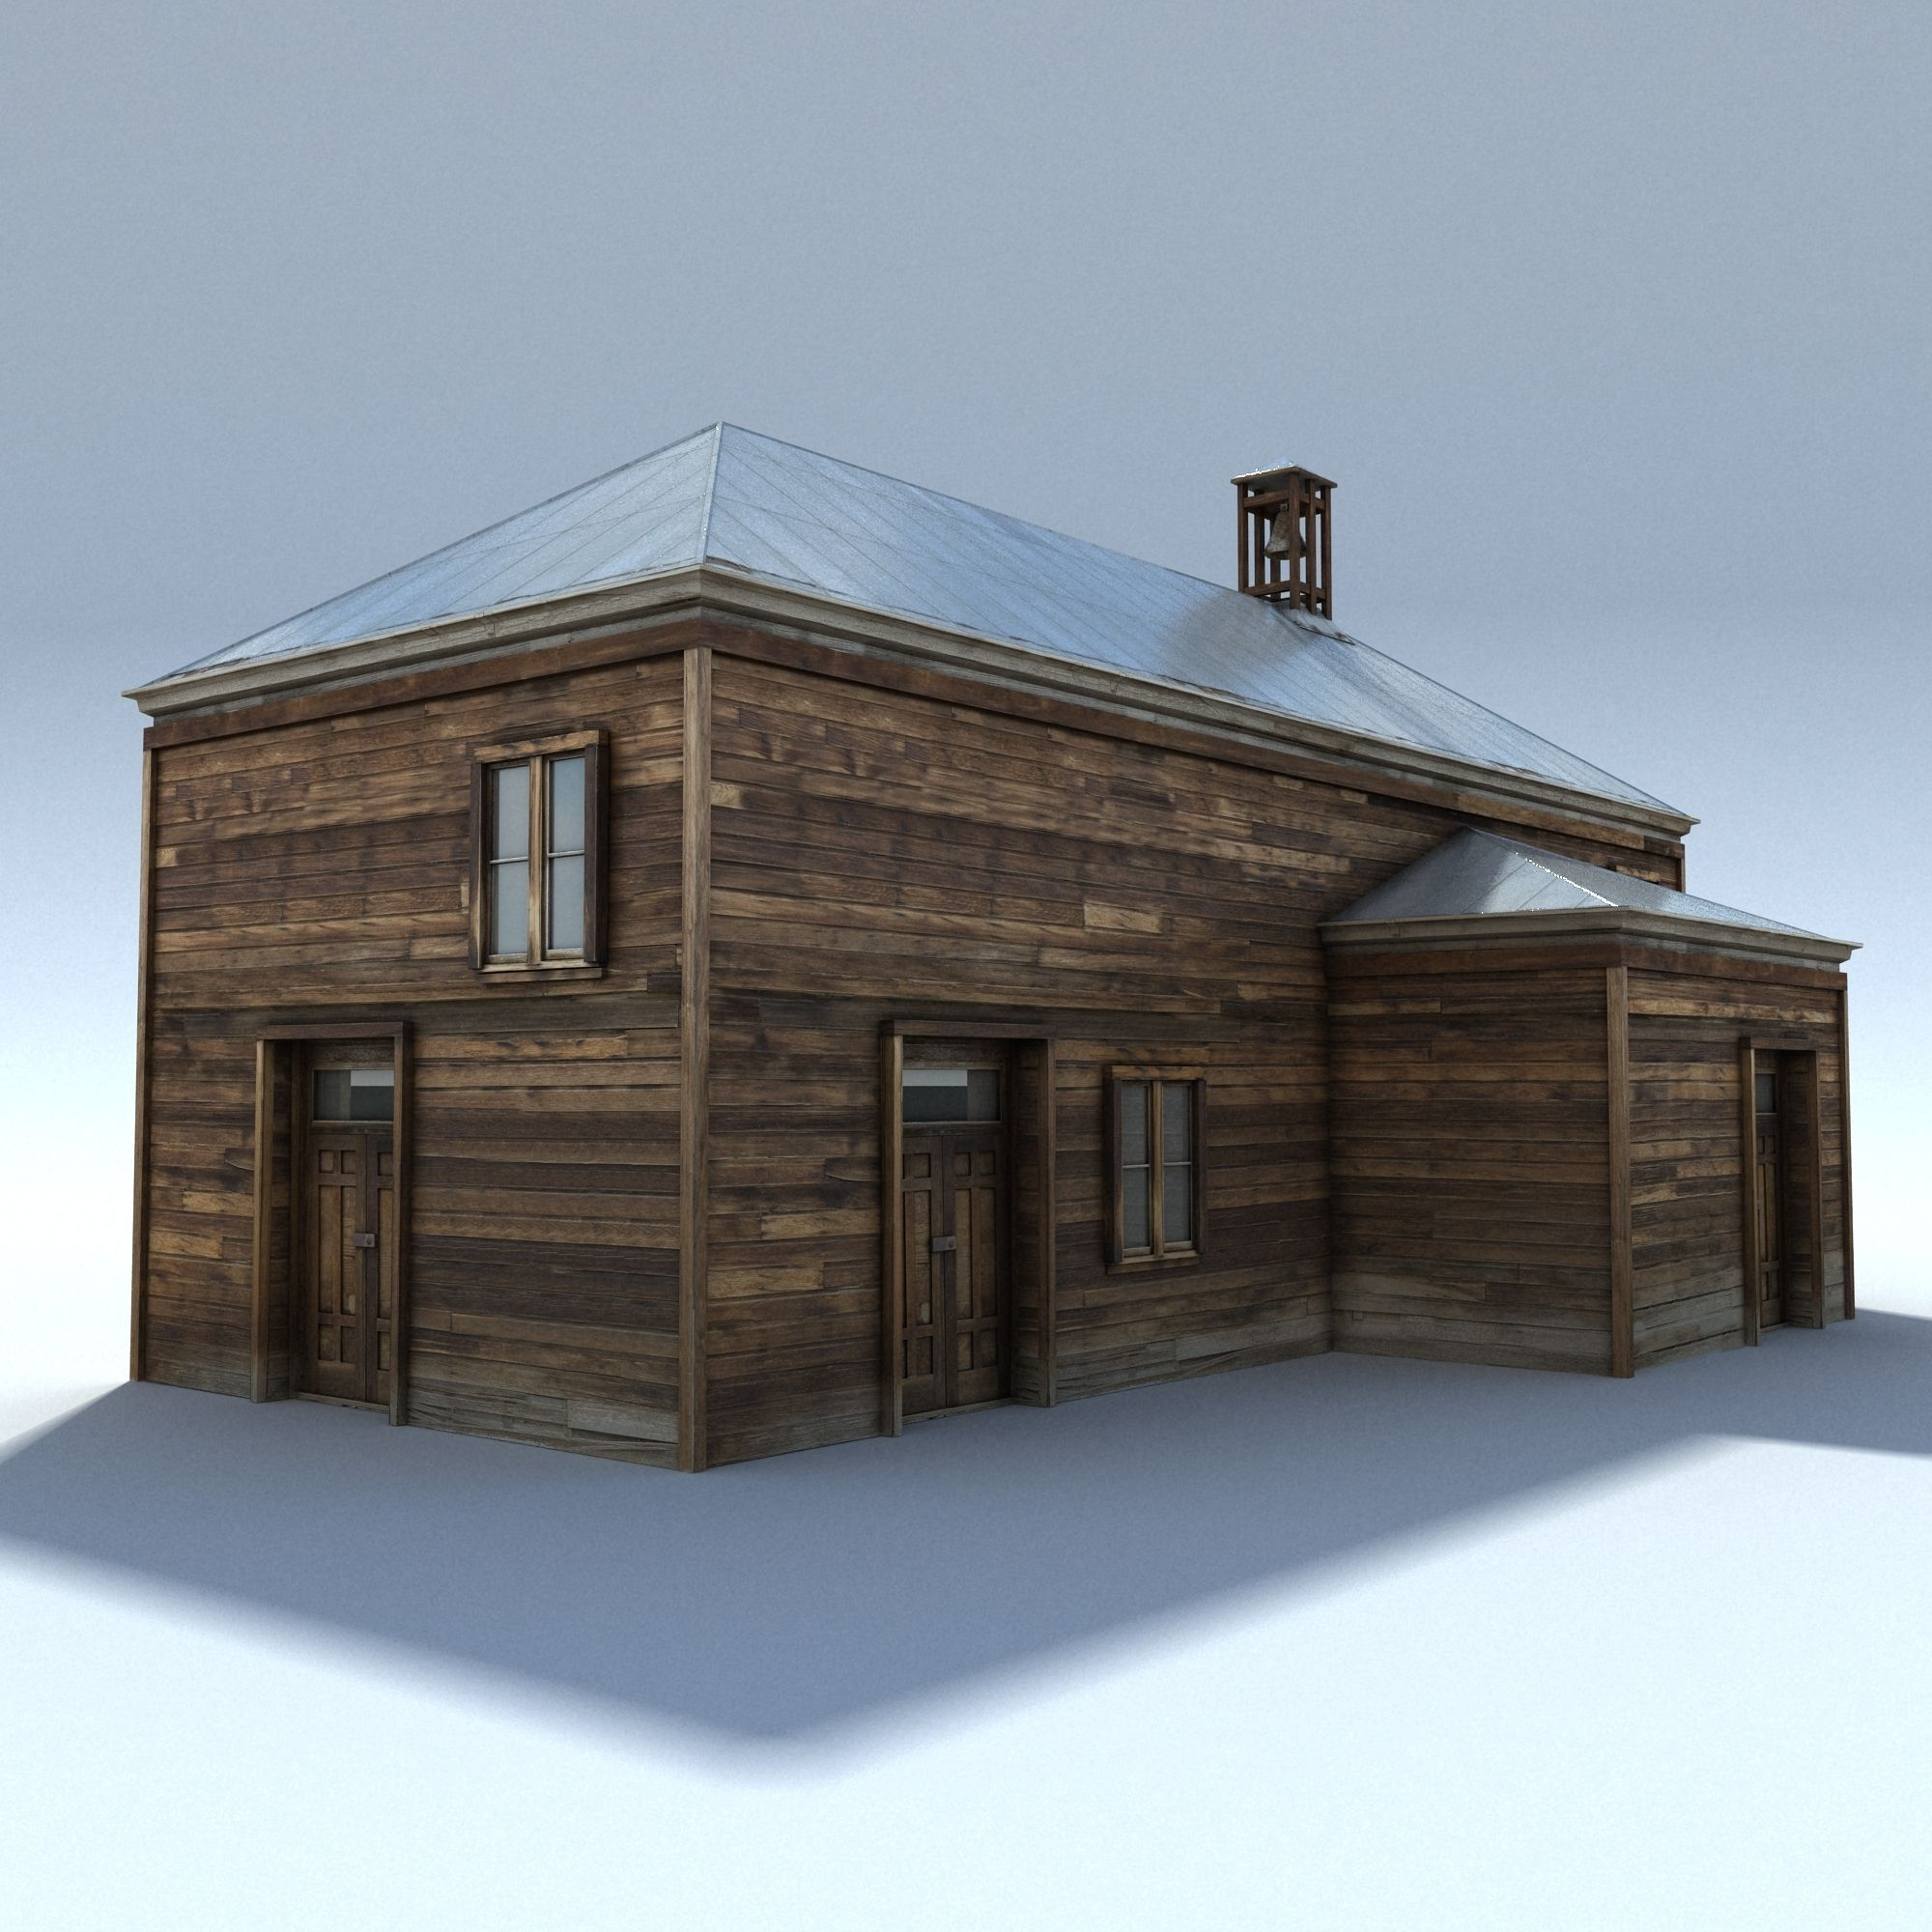 how to make low poly models in 3ds max